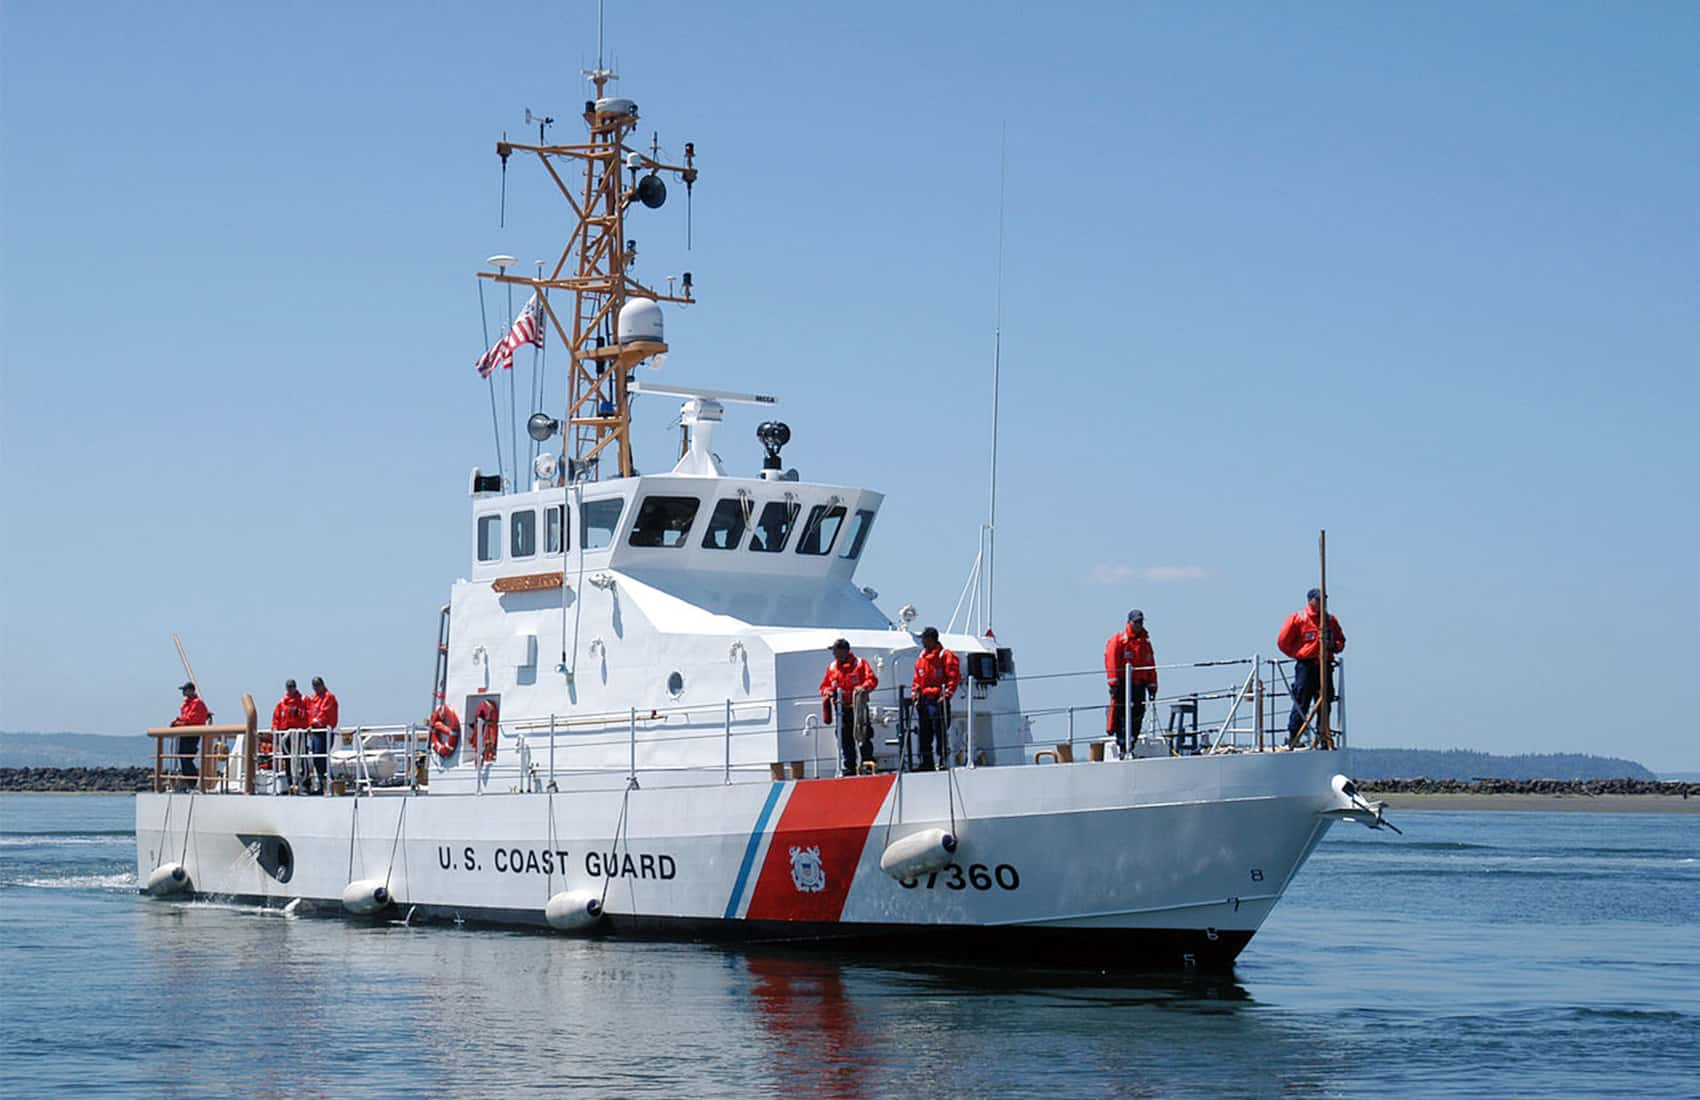 U.S. Coast Guard Vessel